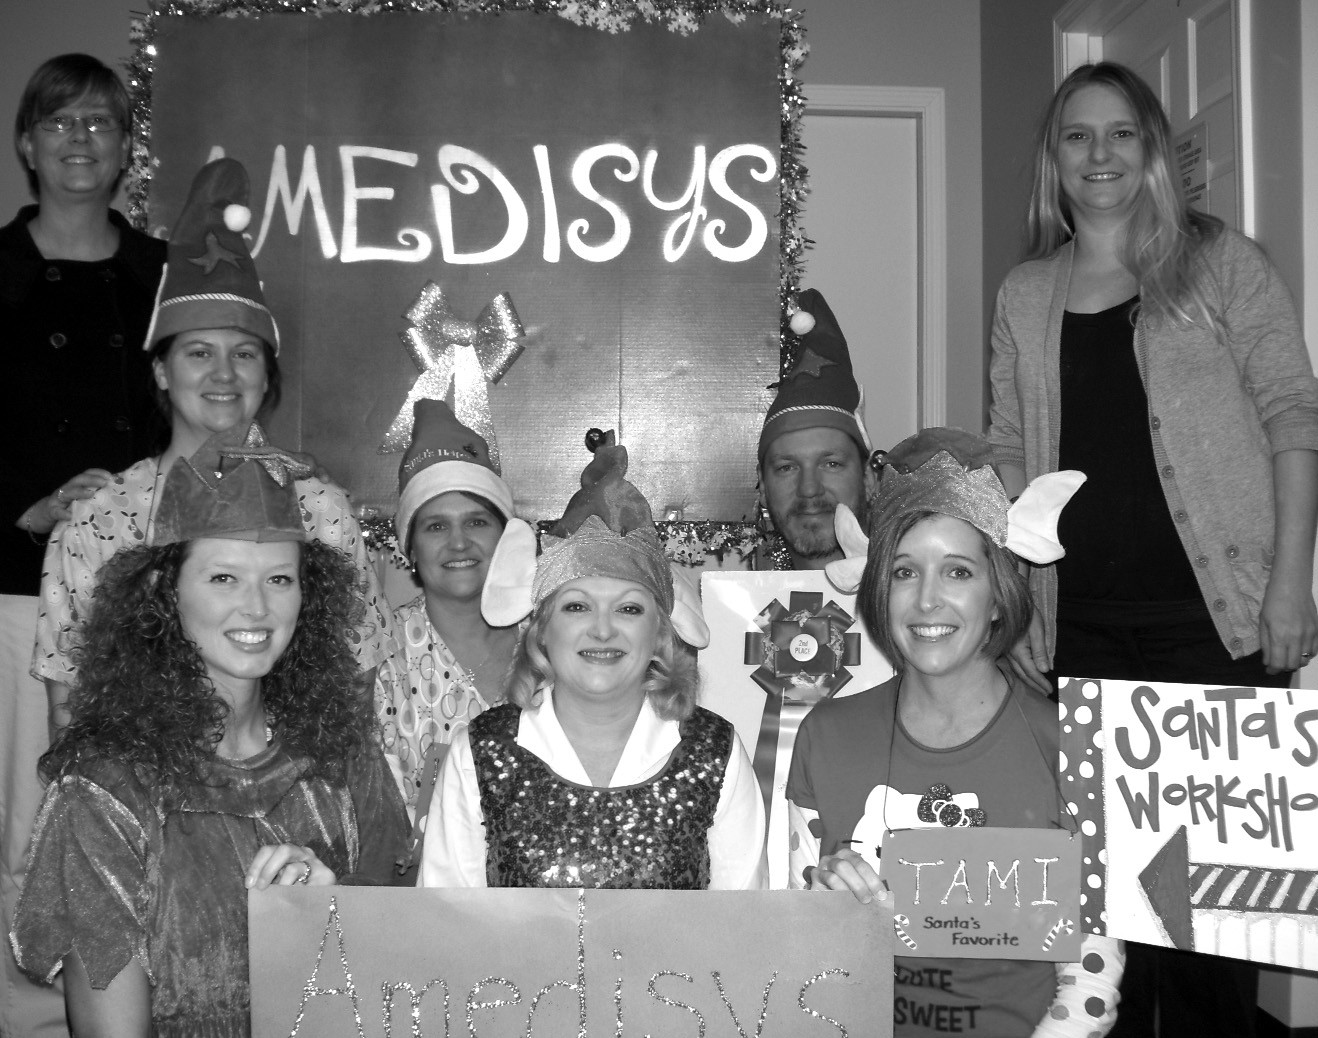 The Amedisys Staff, back row from left to right: Lori Alexander, Kristi Vincent, Leigh Ann Howse, Jeffrey Terrell, and Brandy Chastain. Front row left to right: Christie Holt, Celia Morton, and Tami Rawls. Not pictured: Tammy Shelton, Pam Roberts, and Holly Kilpatrick.